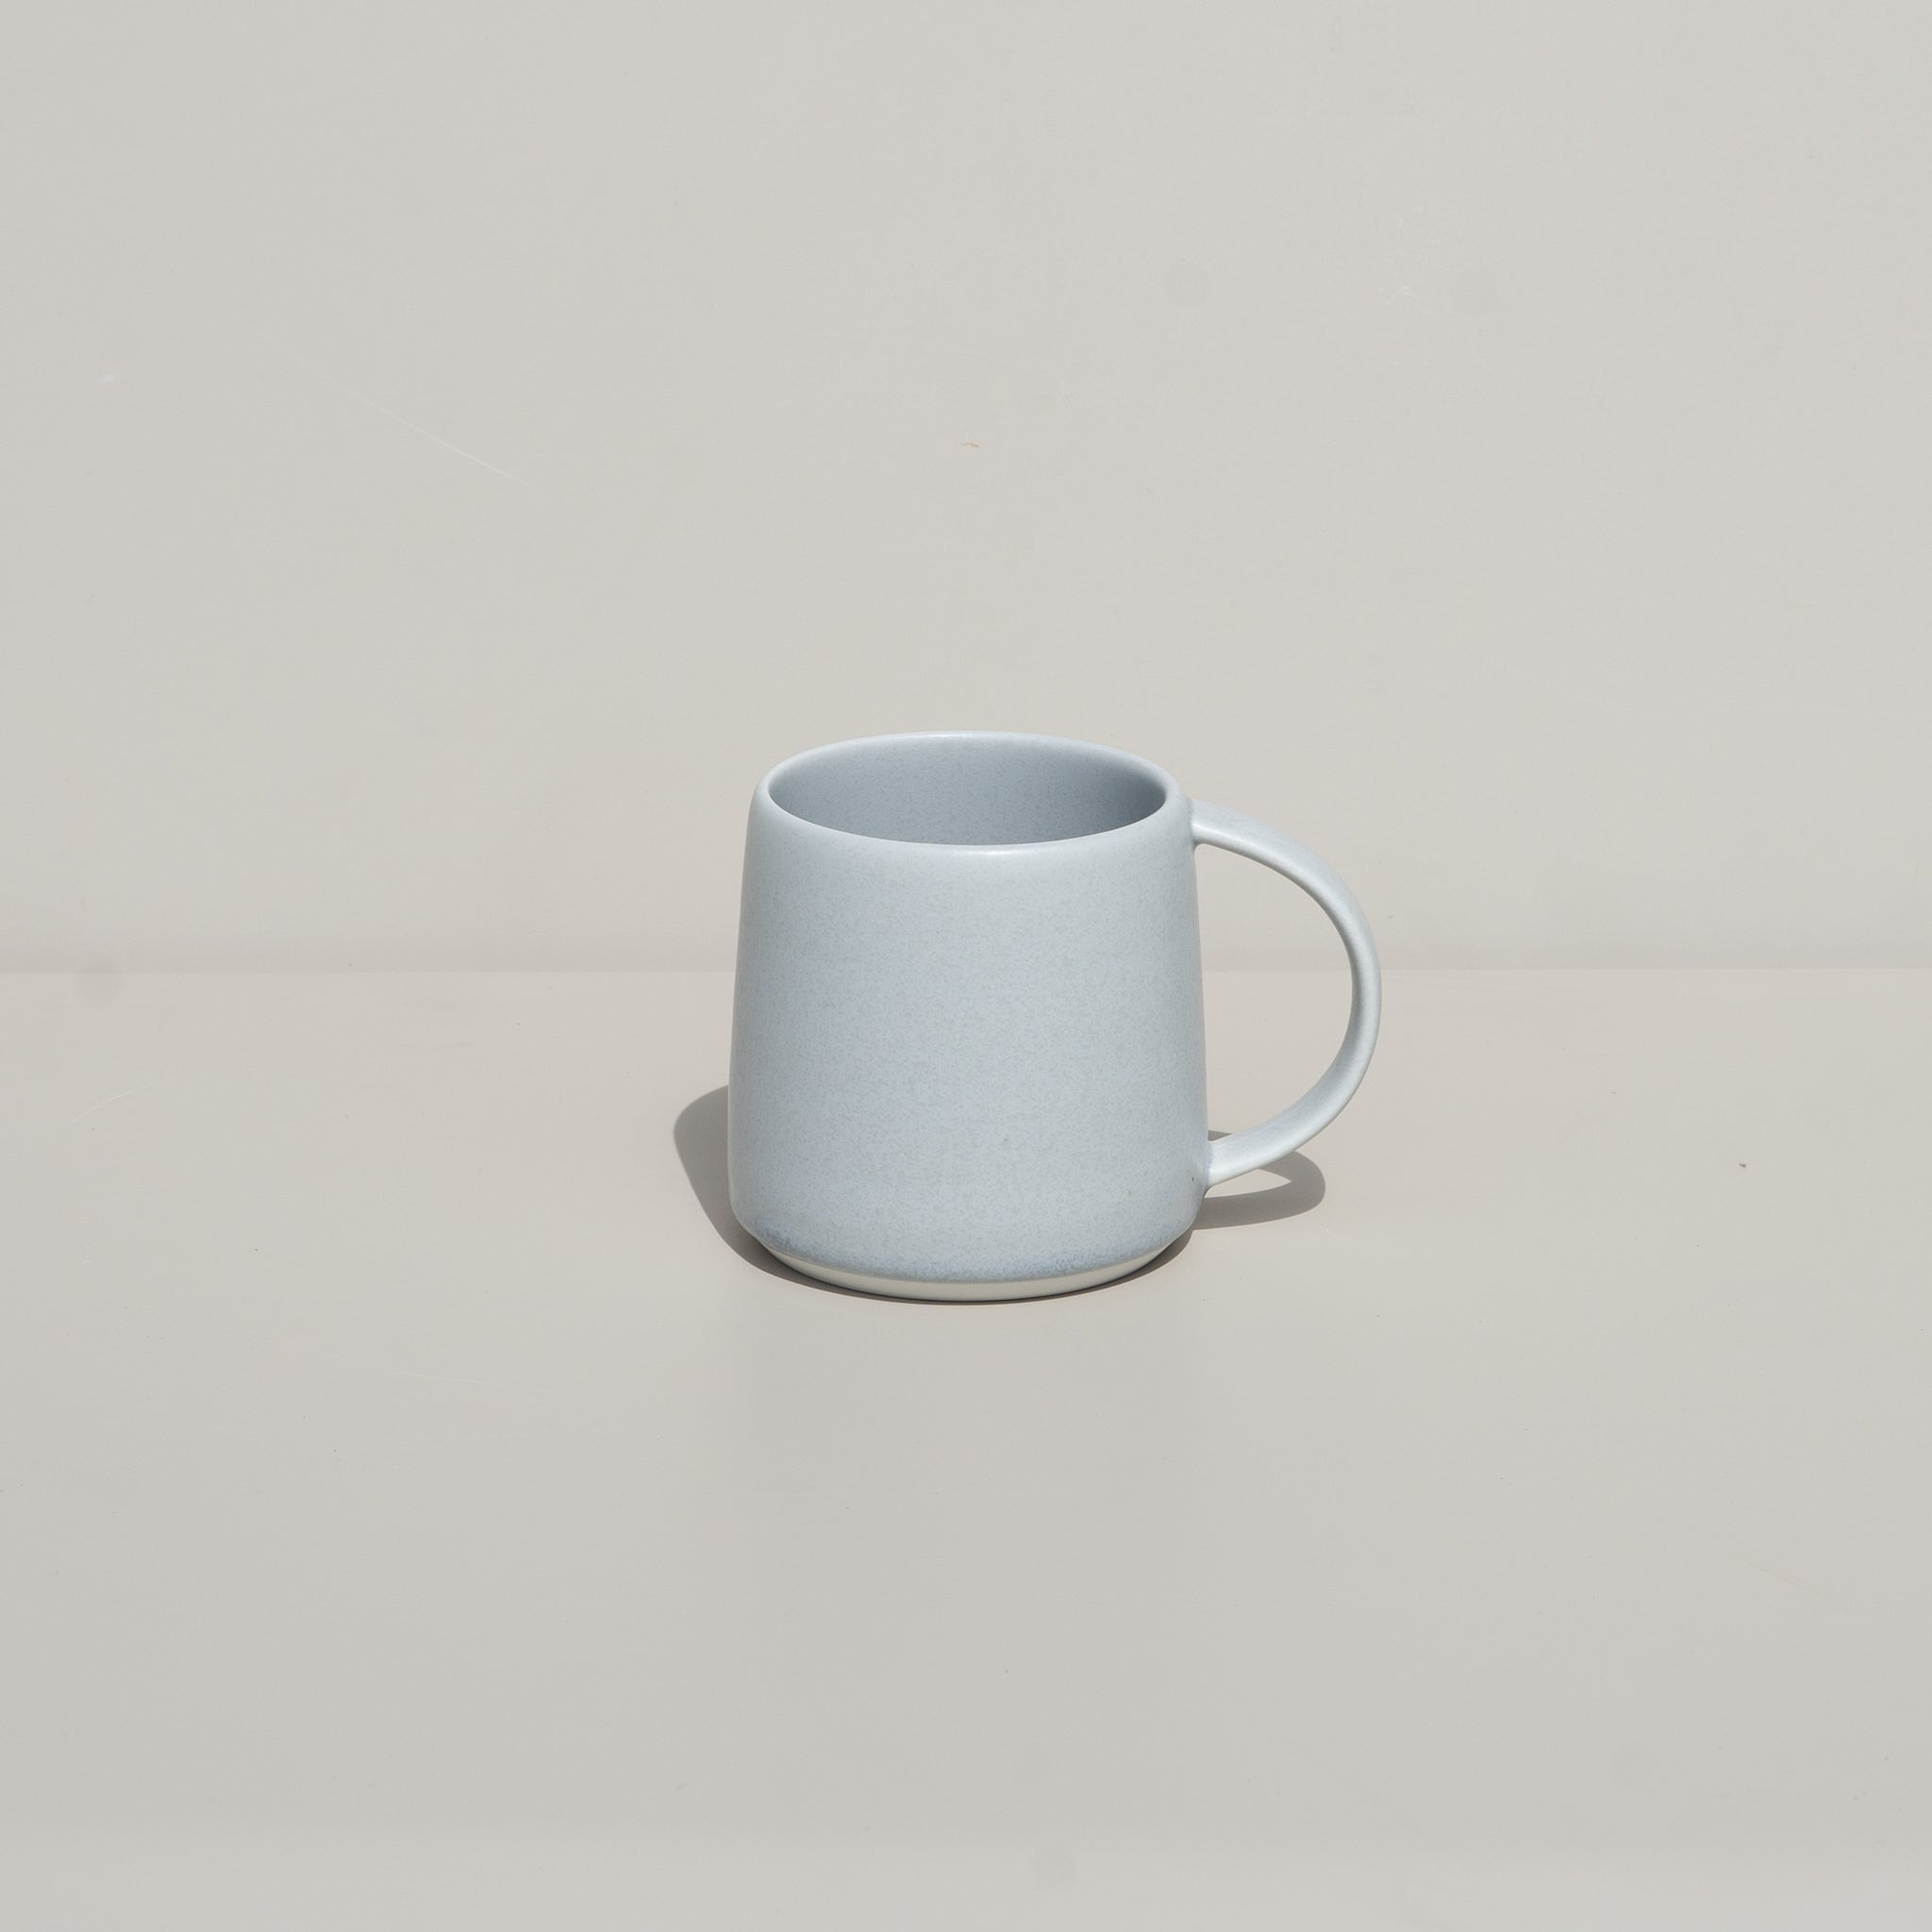 The Ripple Mug from Kinto in soft gray.